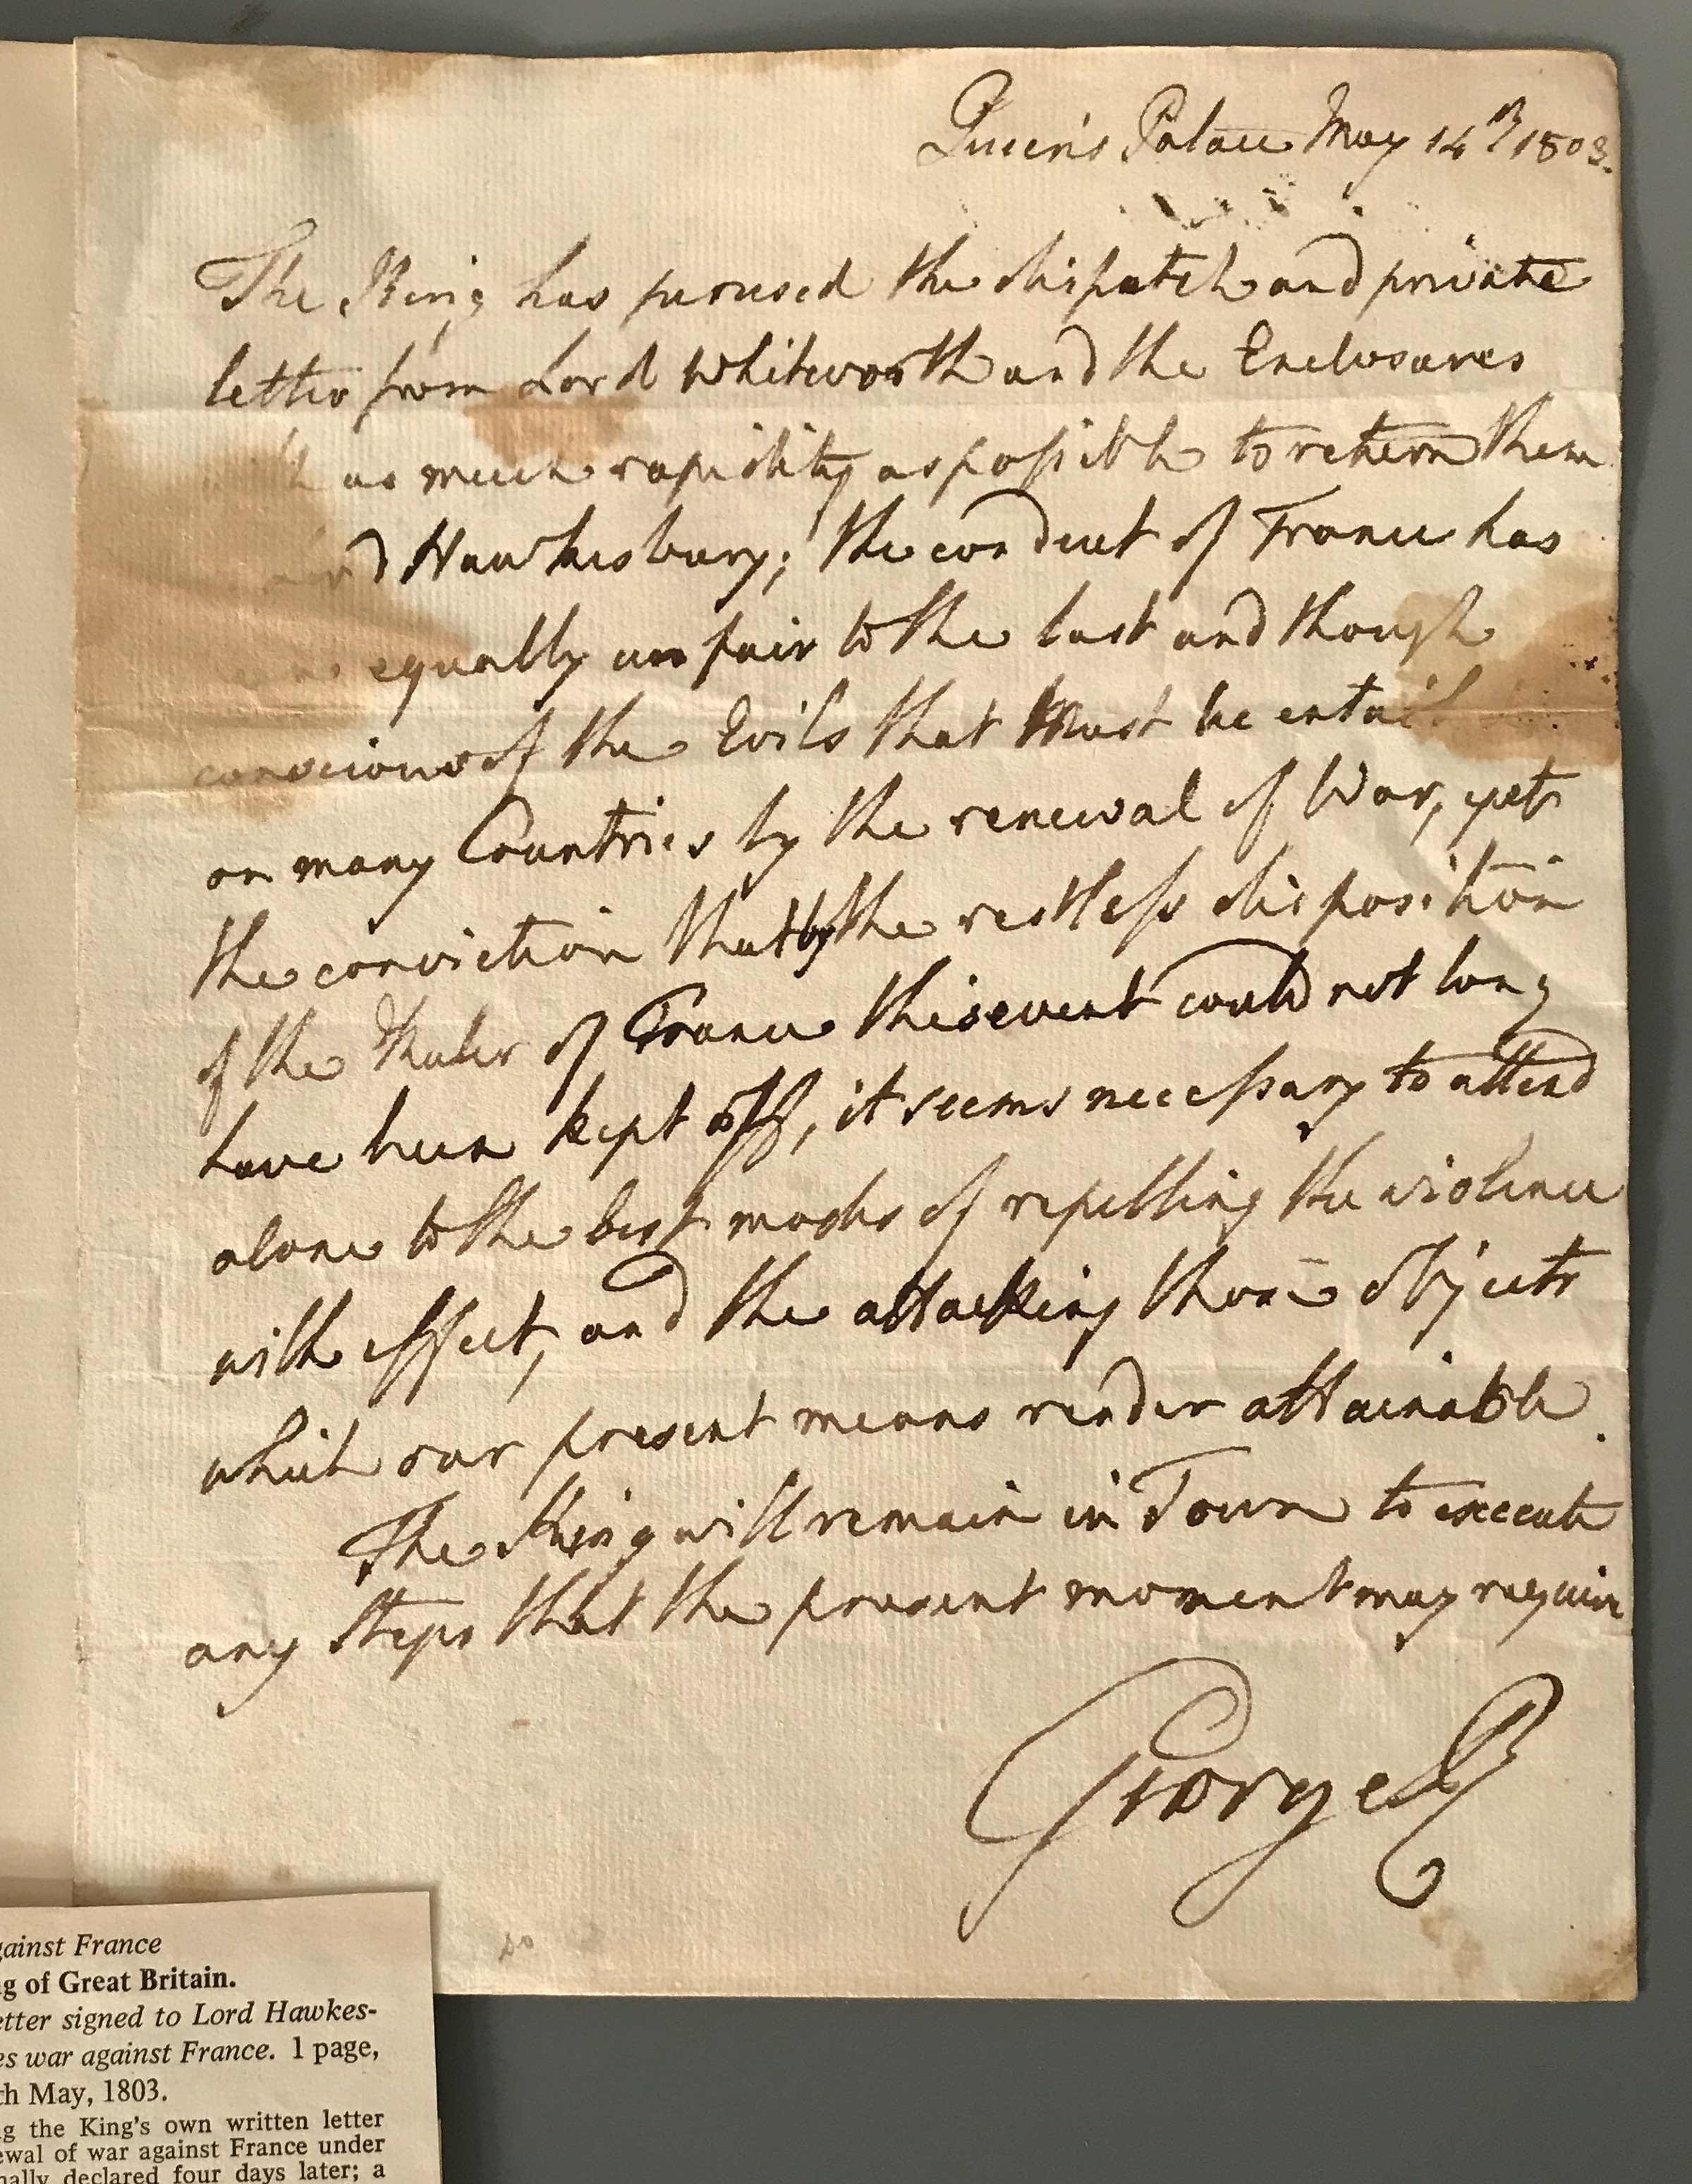 The letter from King George III